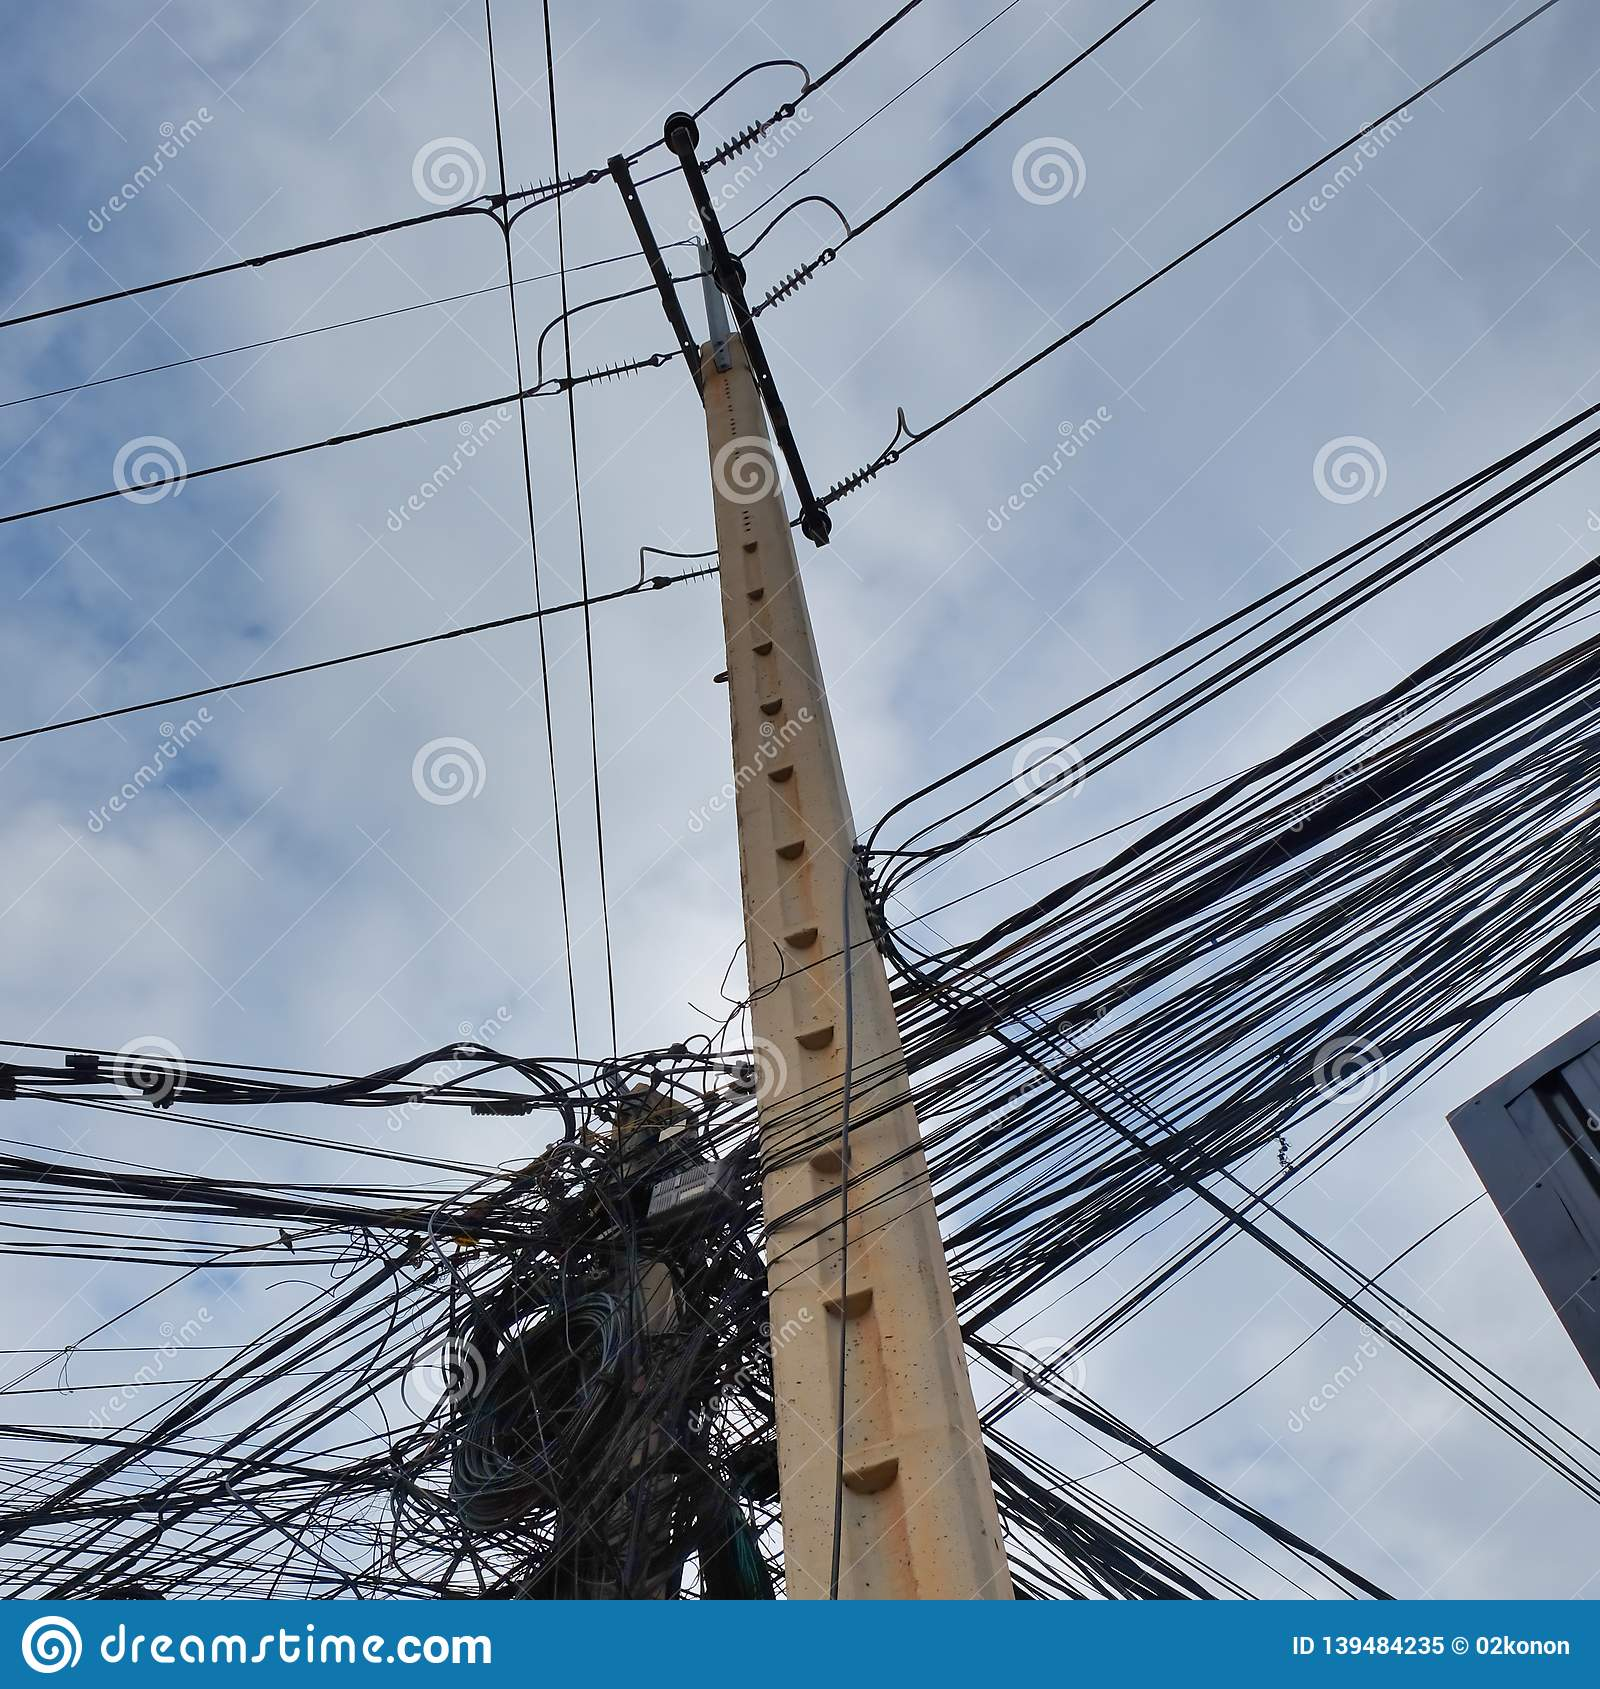 Chaos In Power Lines, Tangled City Communications, Problems